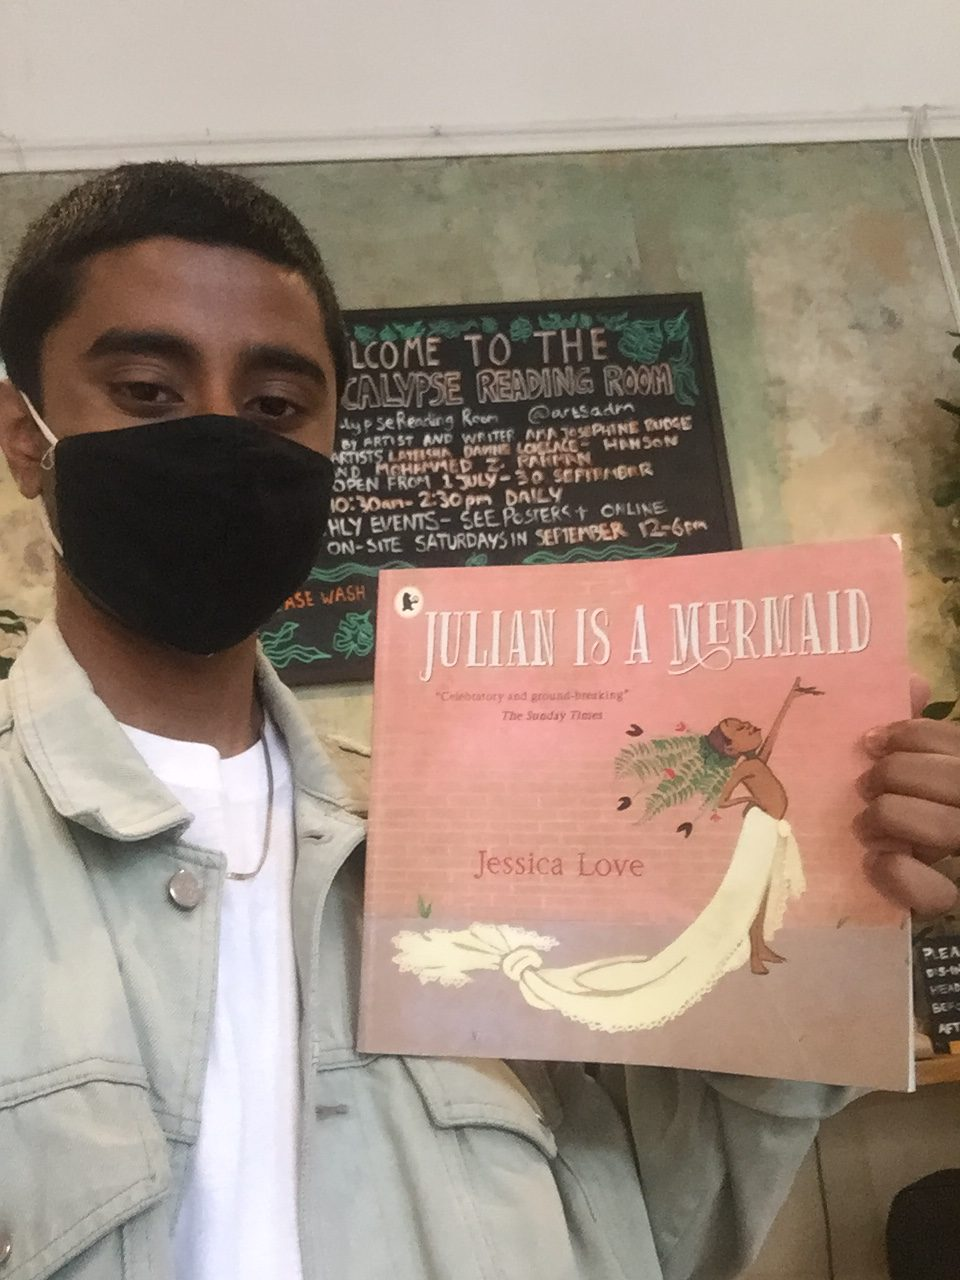 Mohammed holds up the book Julian is a Mermaid